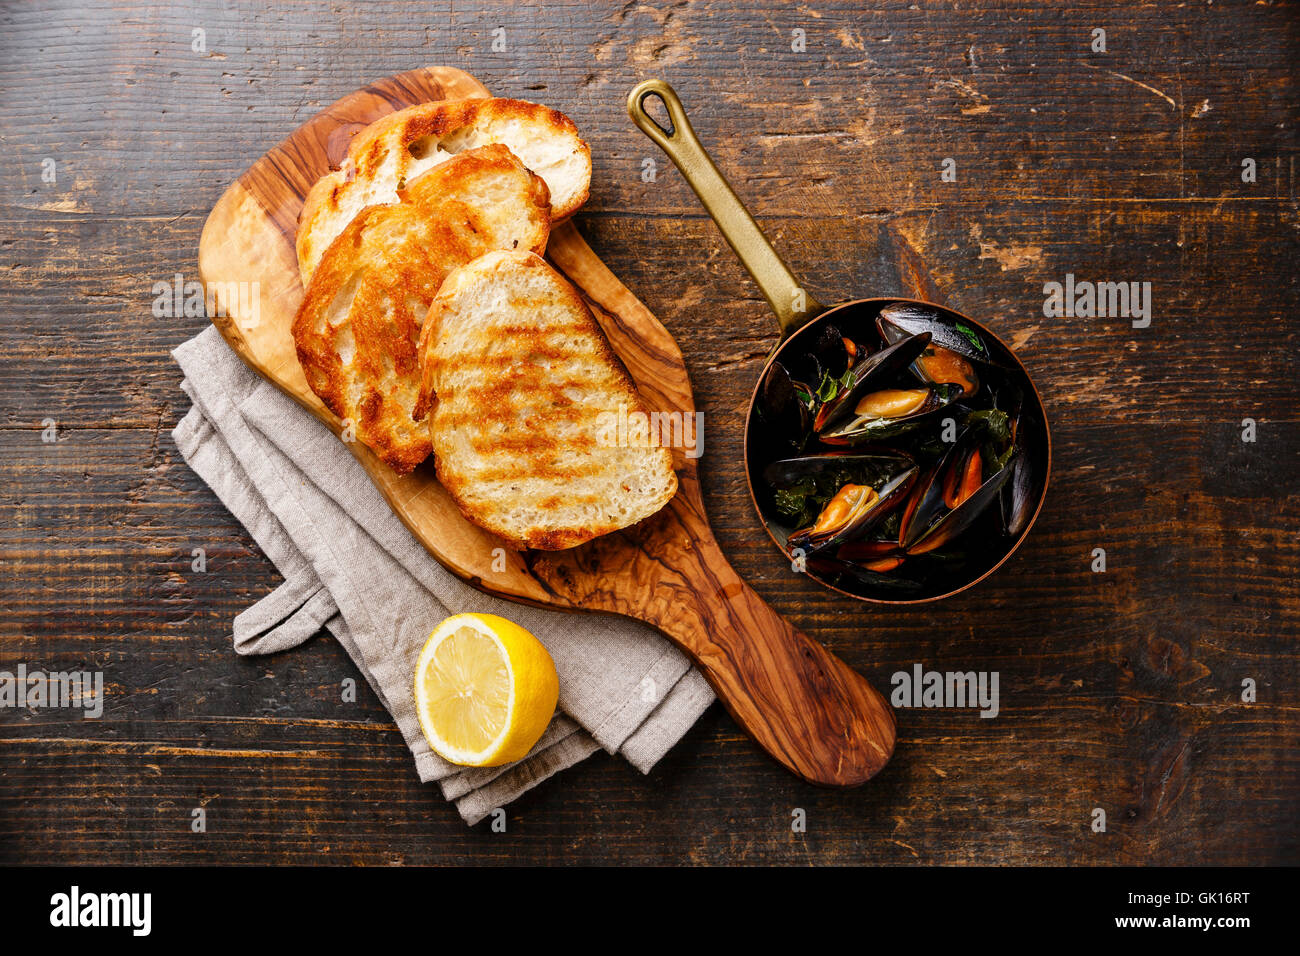 Mussels in copper pot, bread toasts and lemon on wooden background Stock Photo